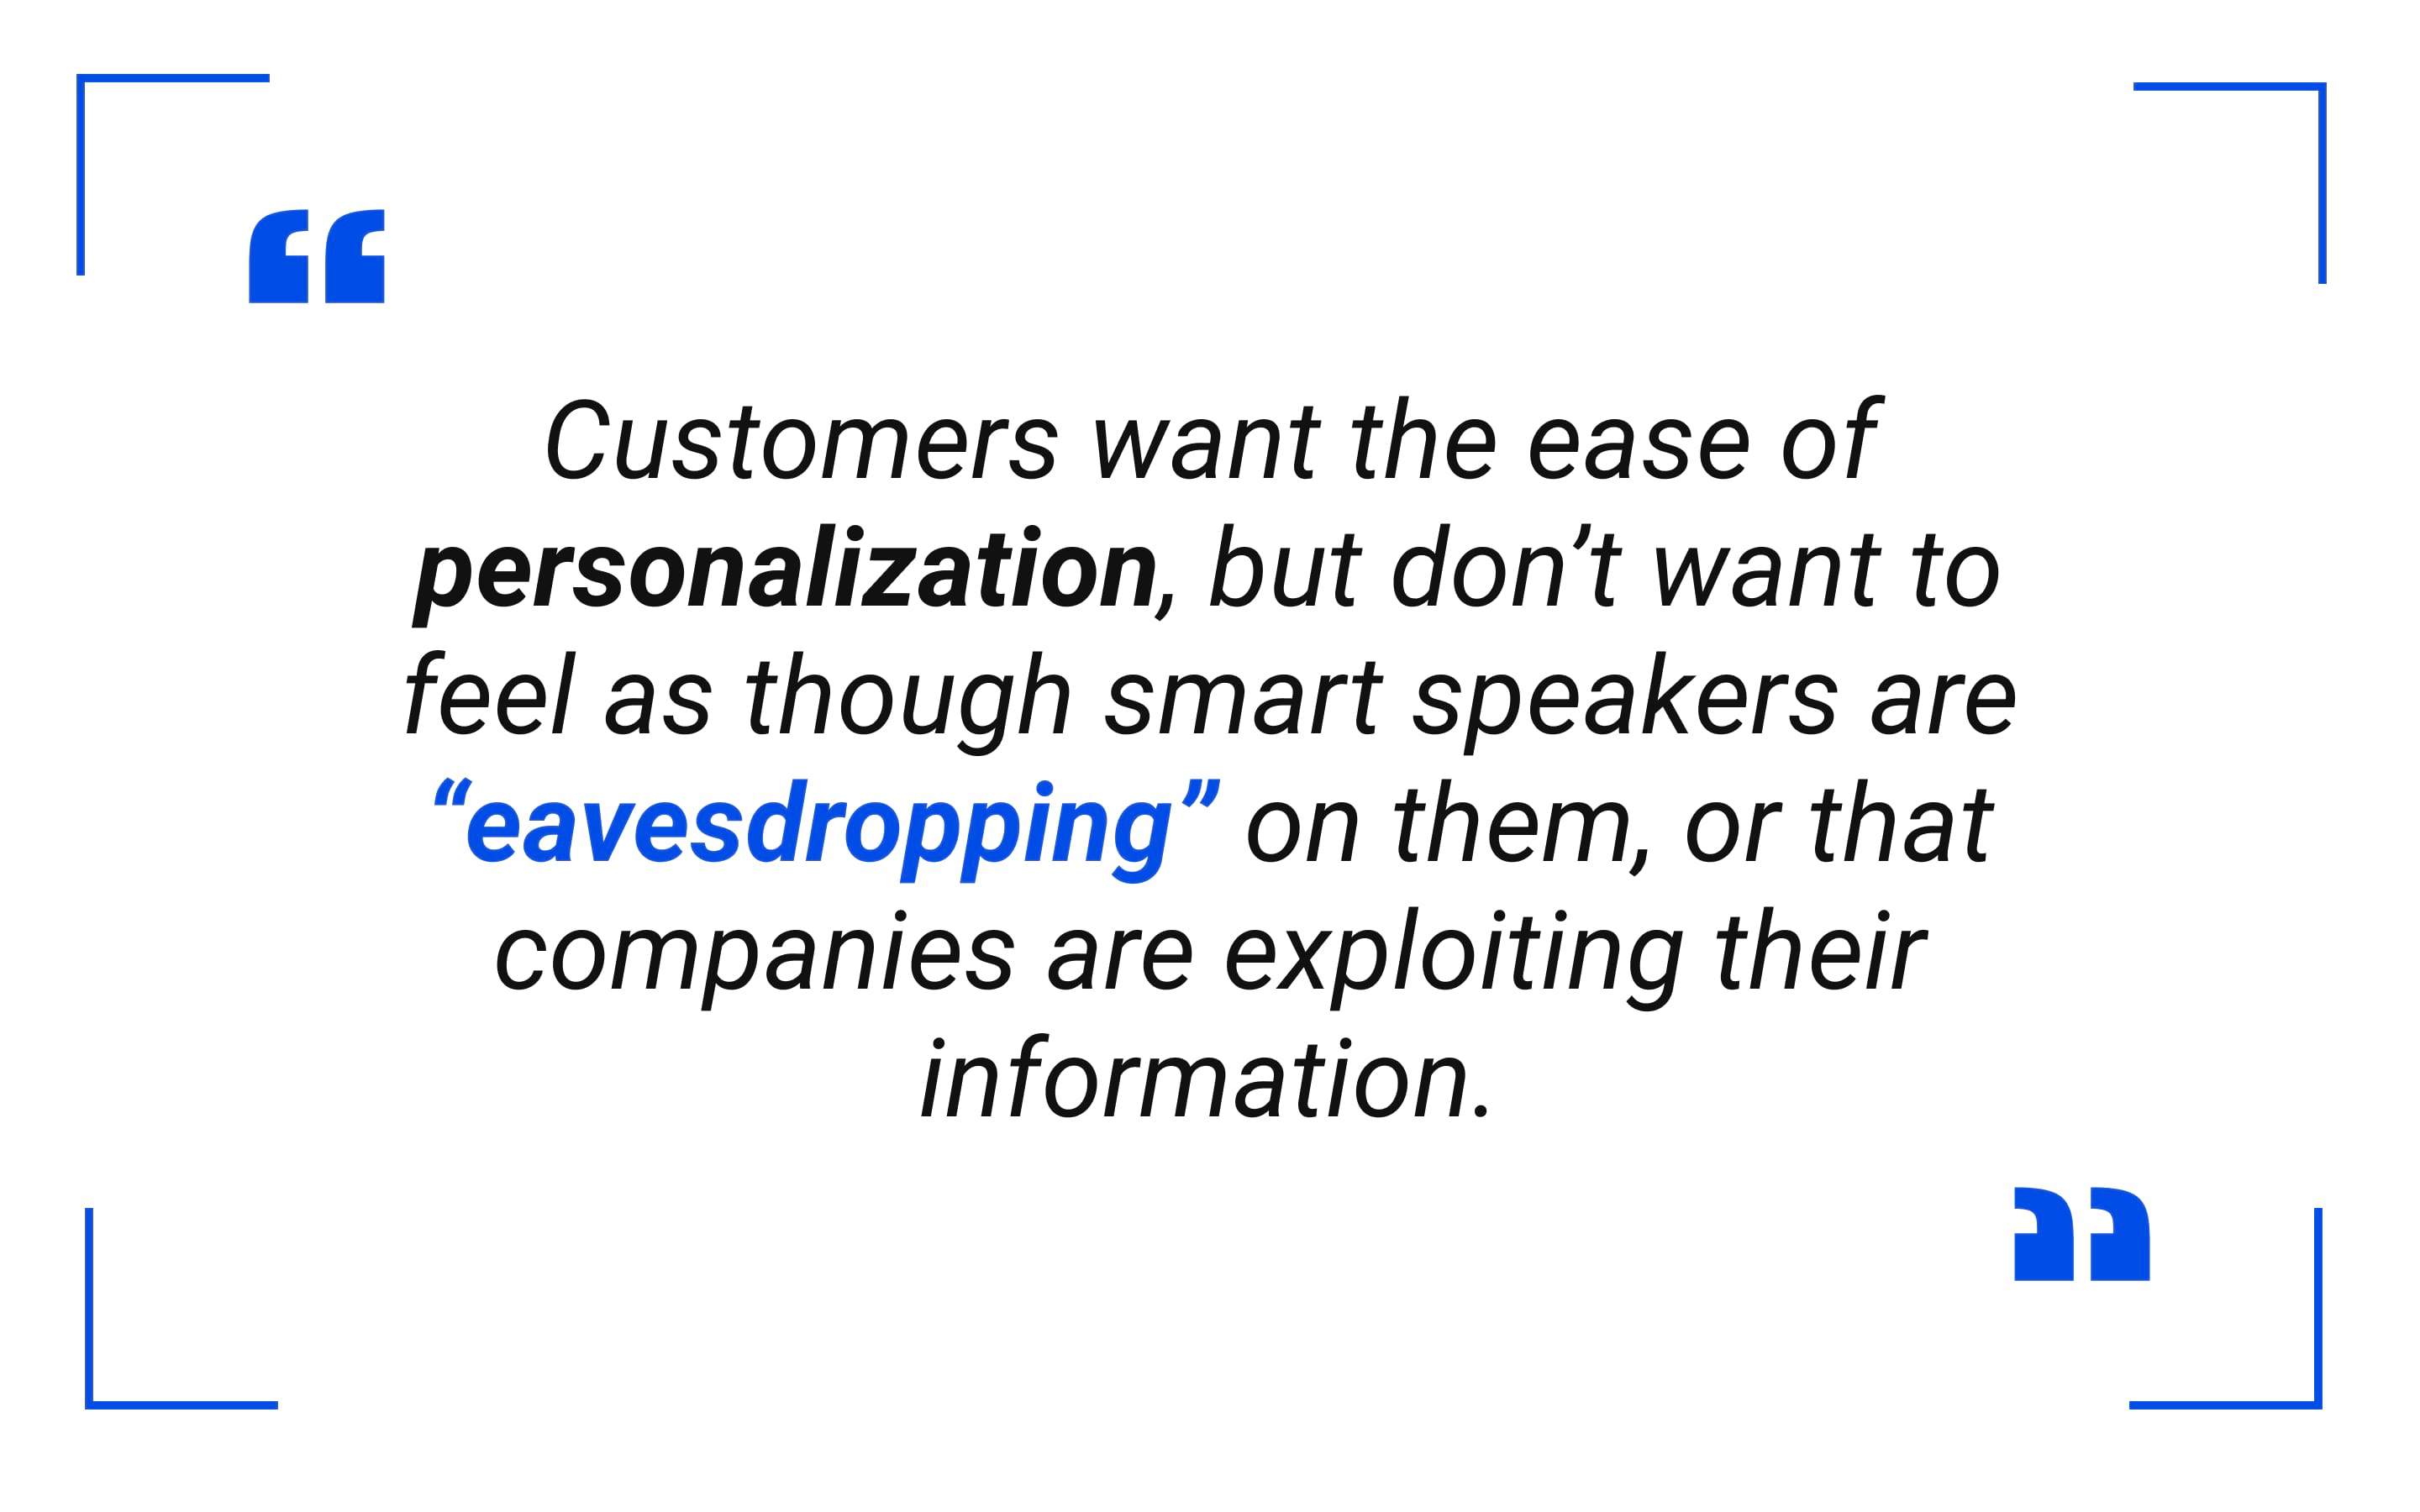 Customers want the ease of personalization